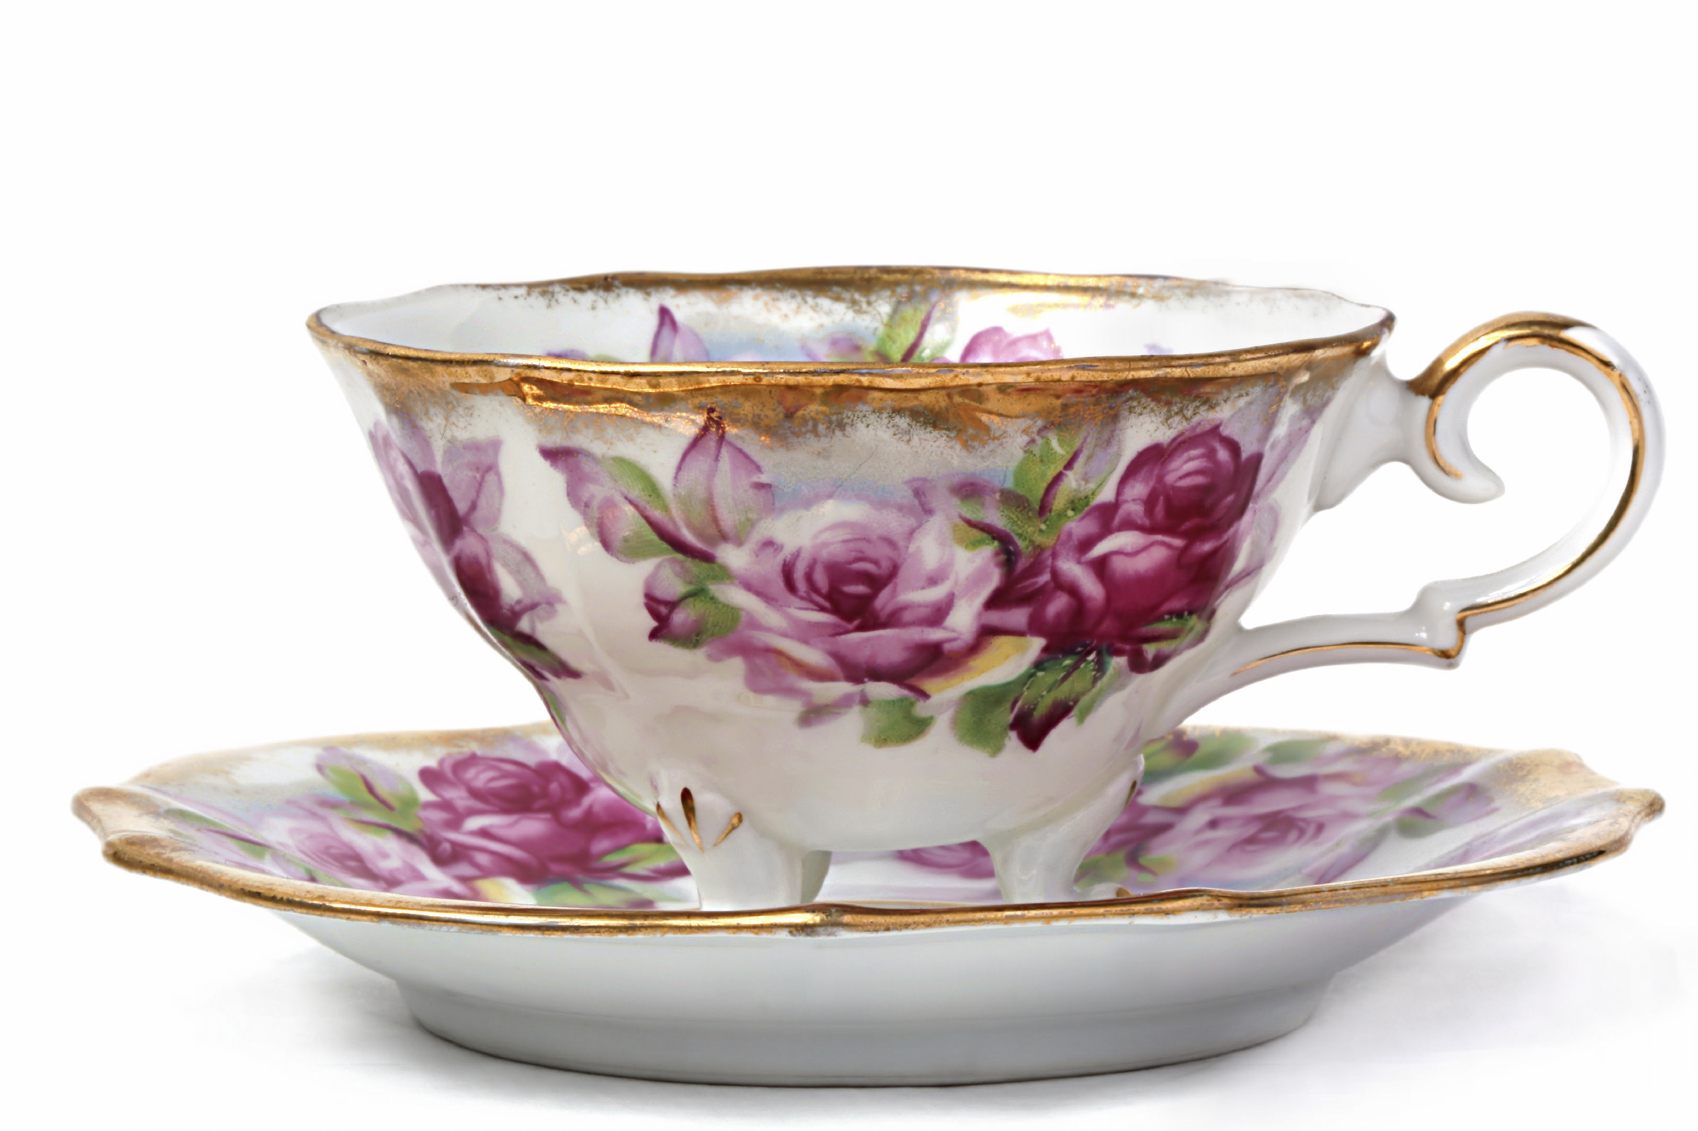 Cake Decorating Classes Mansfield Uk : Vintage china tea set hire   CAKES BY LIZZIE, EDINBURGH